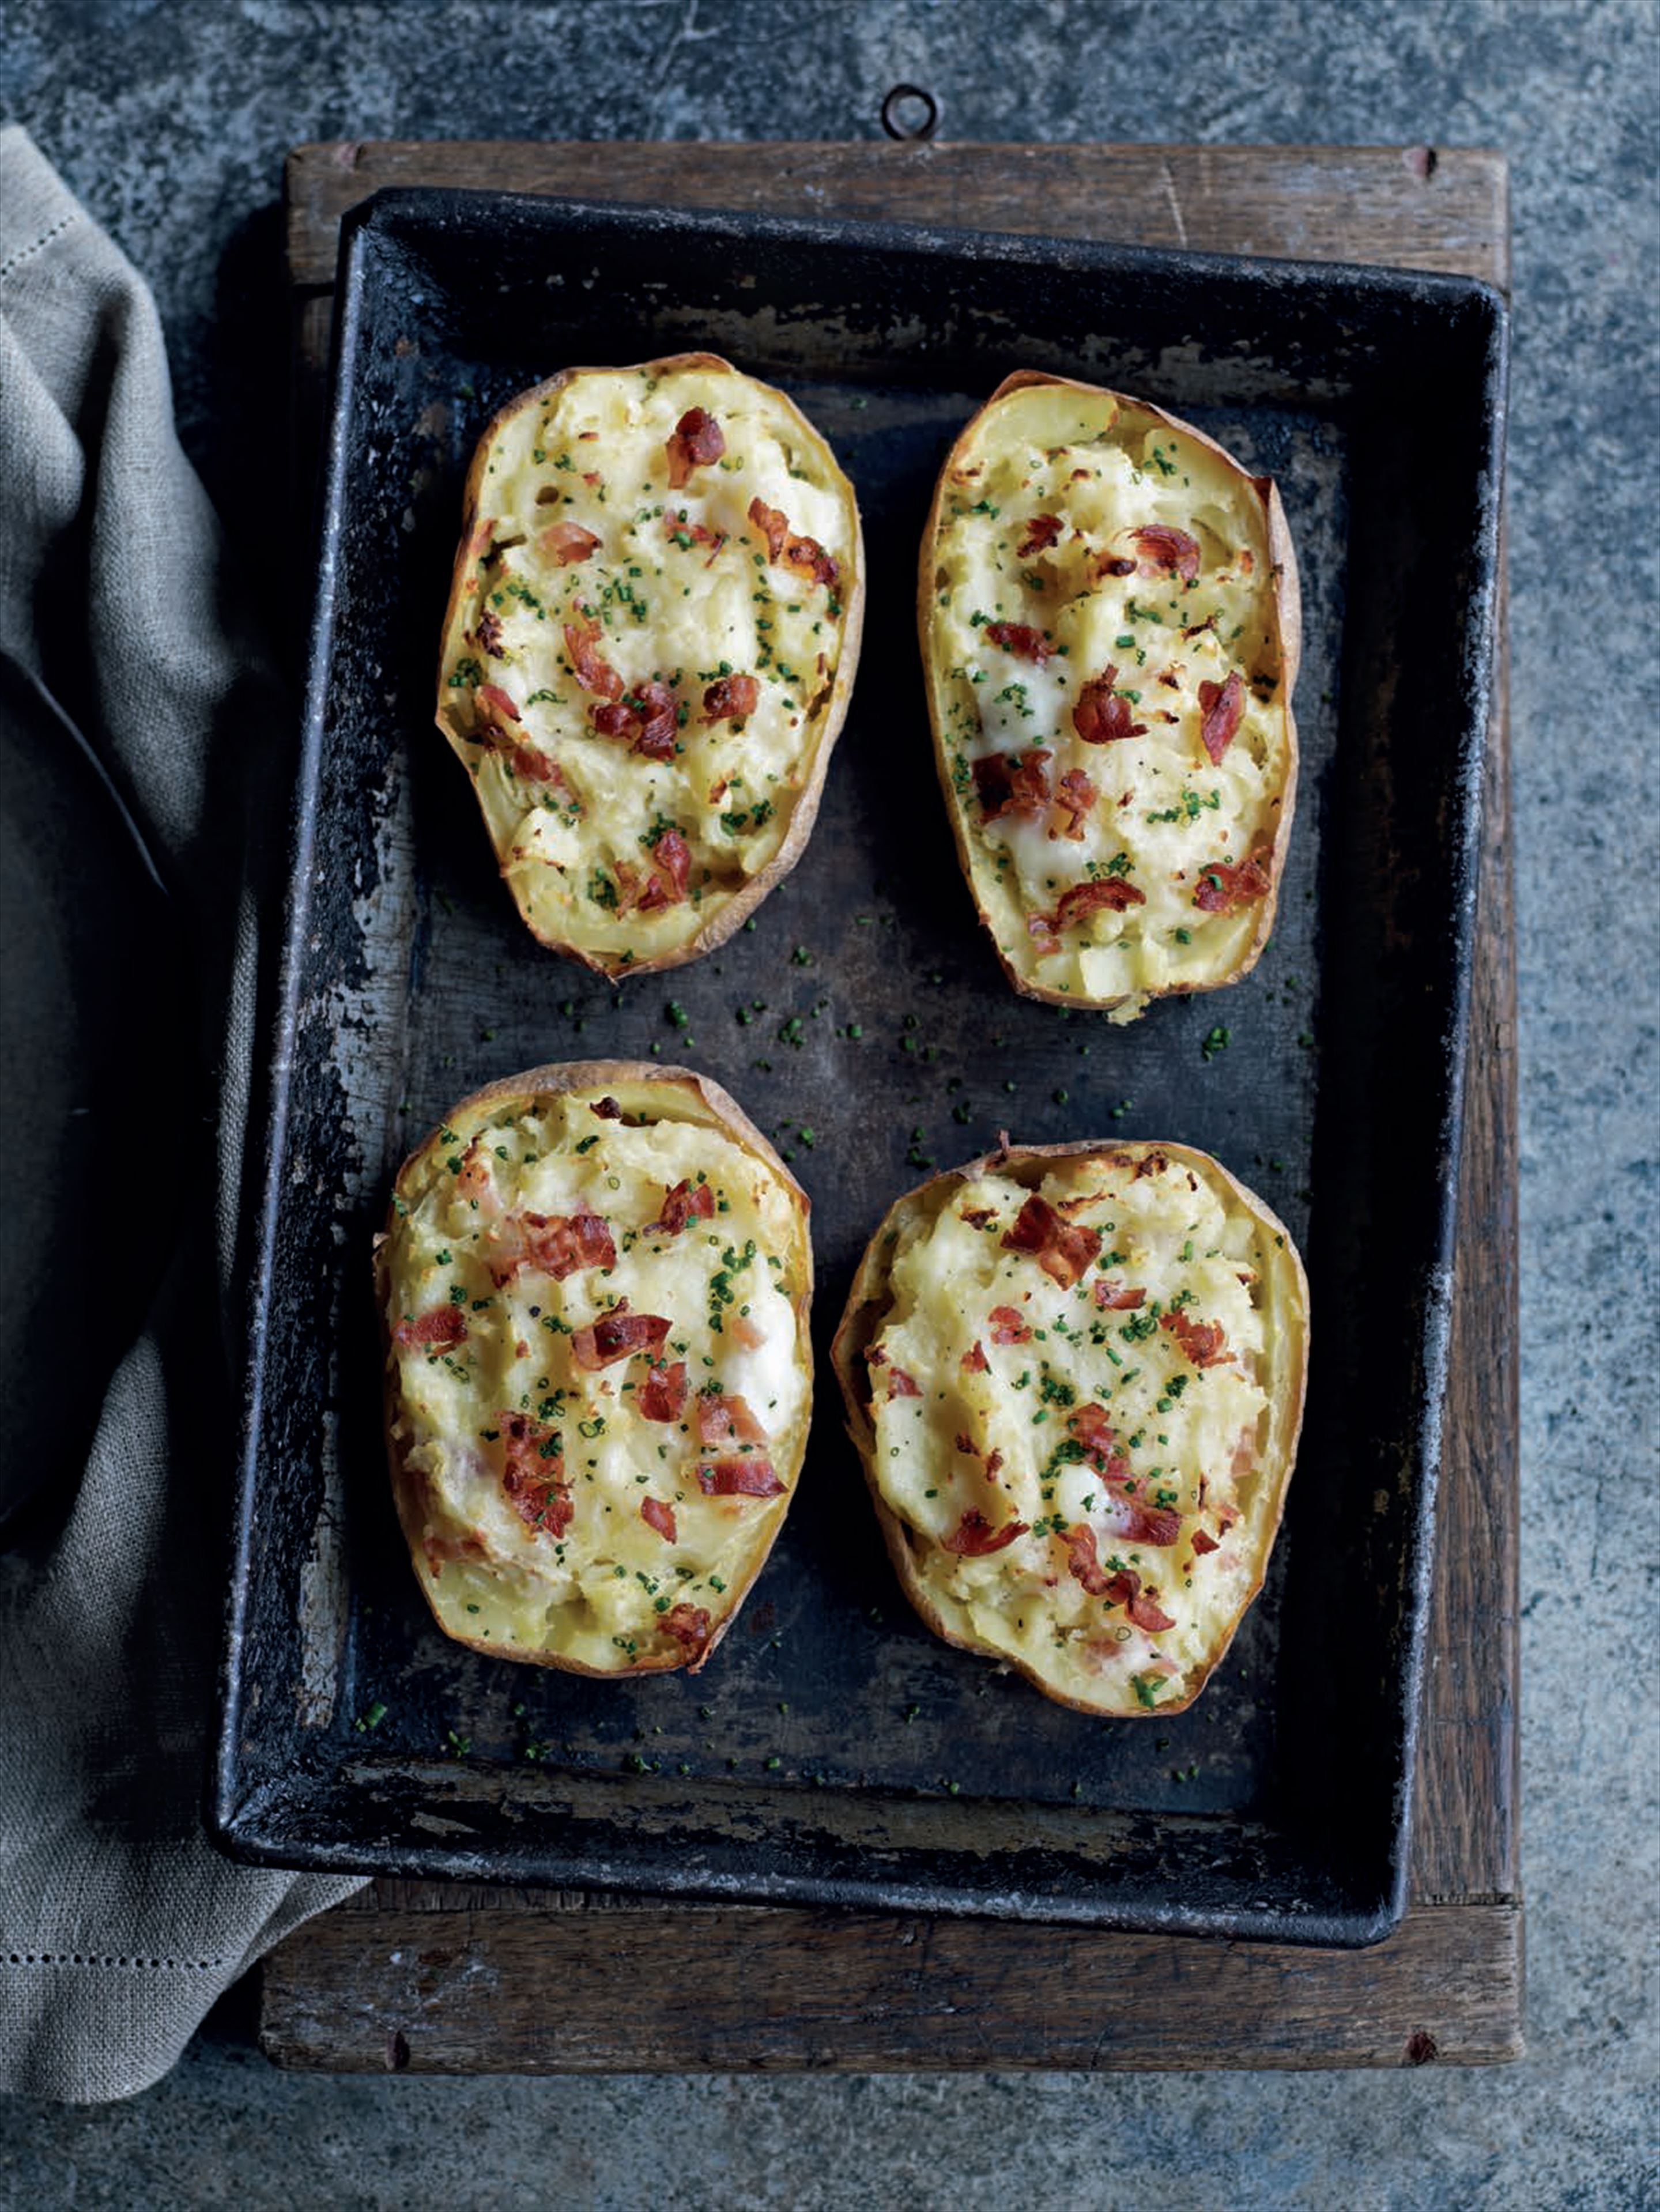 Baked potatoes with pancetta and taleggio